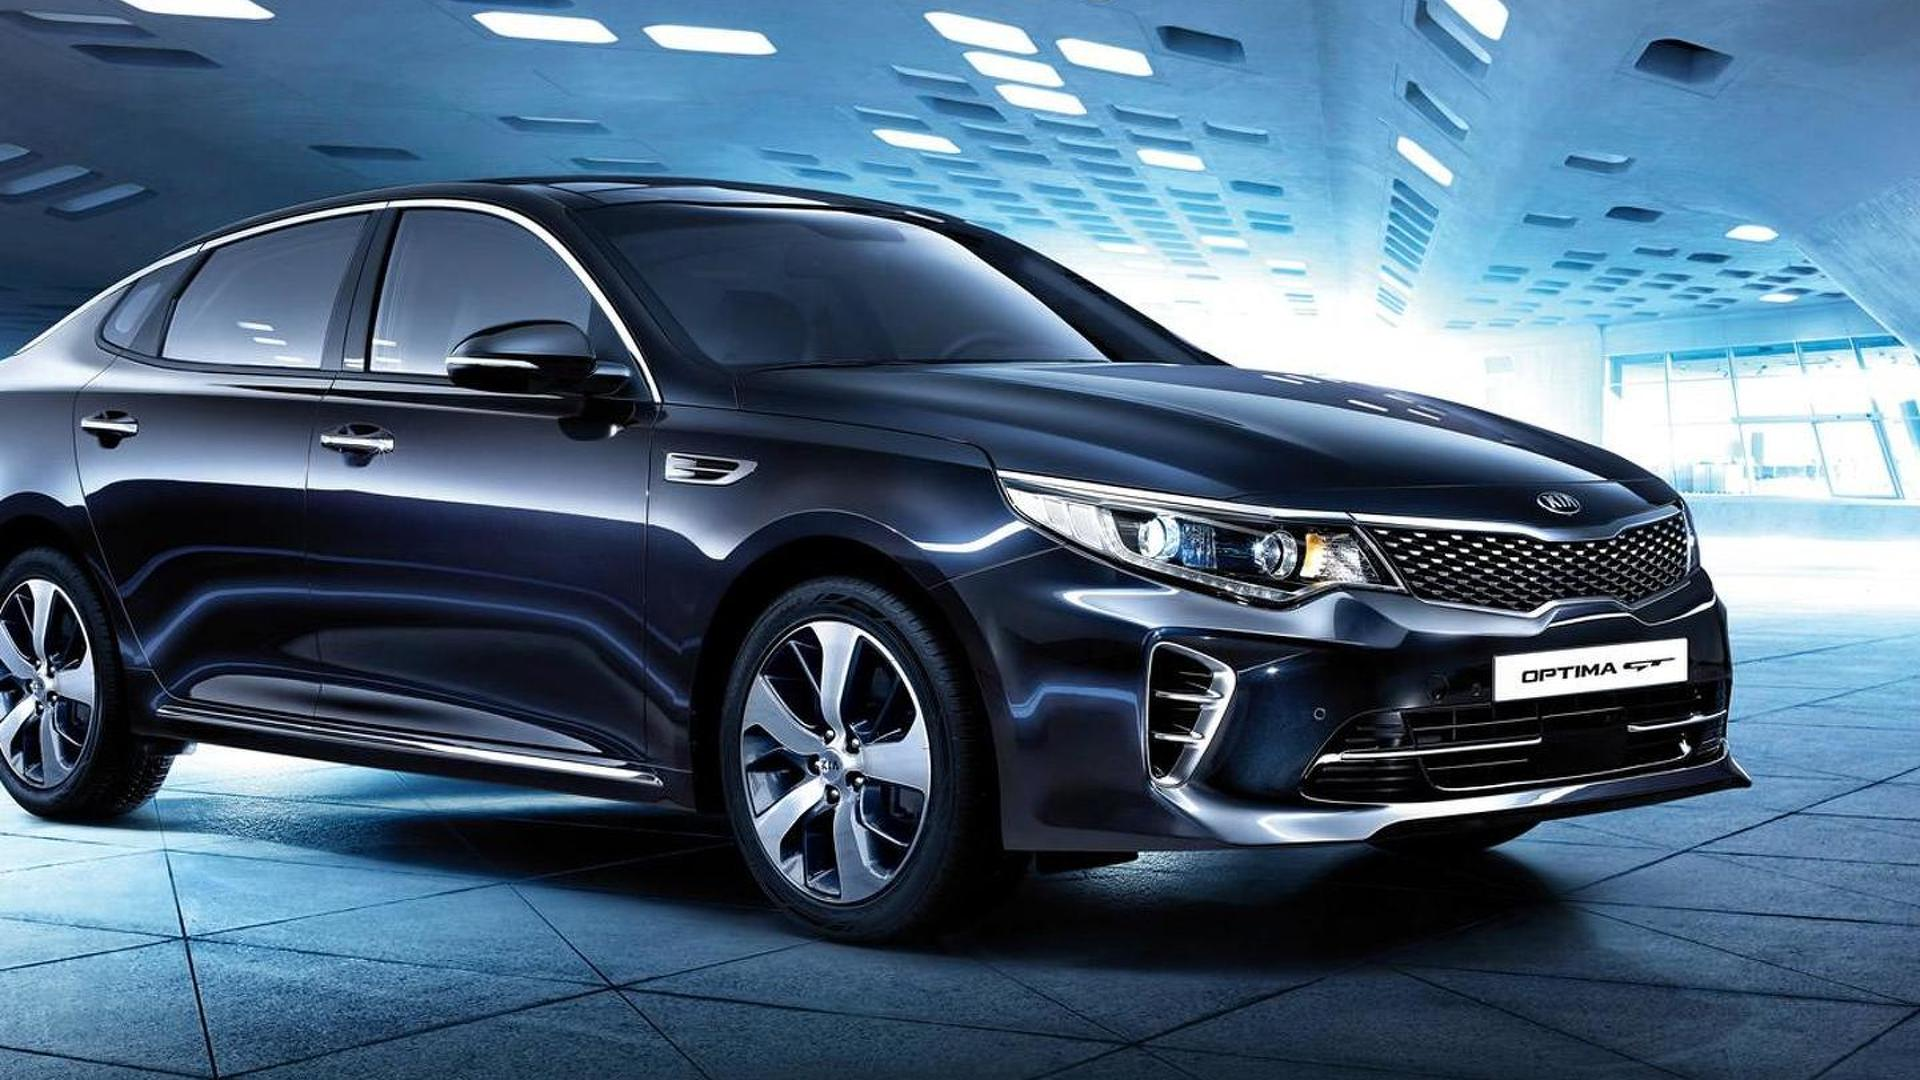 video auto preview york news h show optima new kia